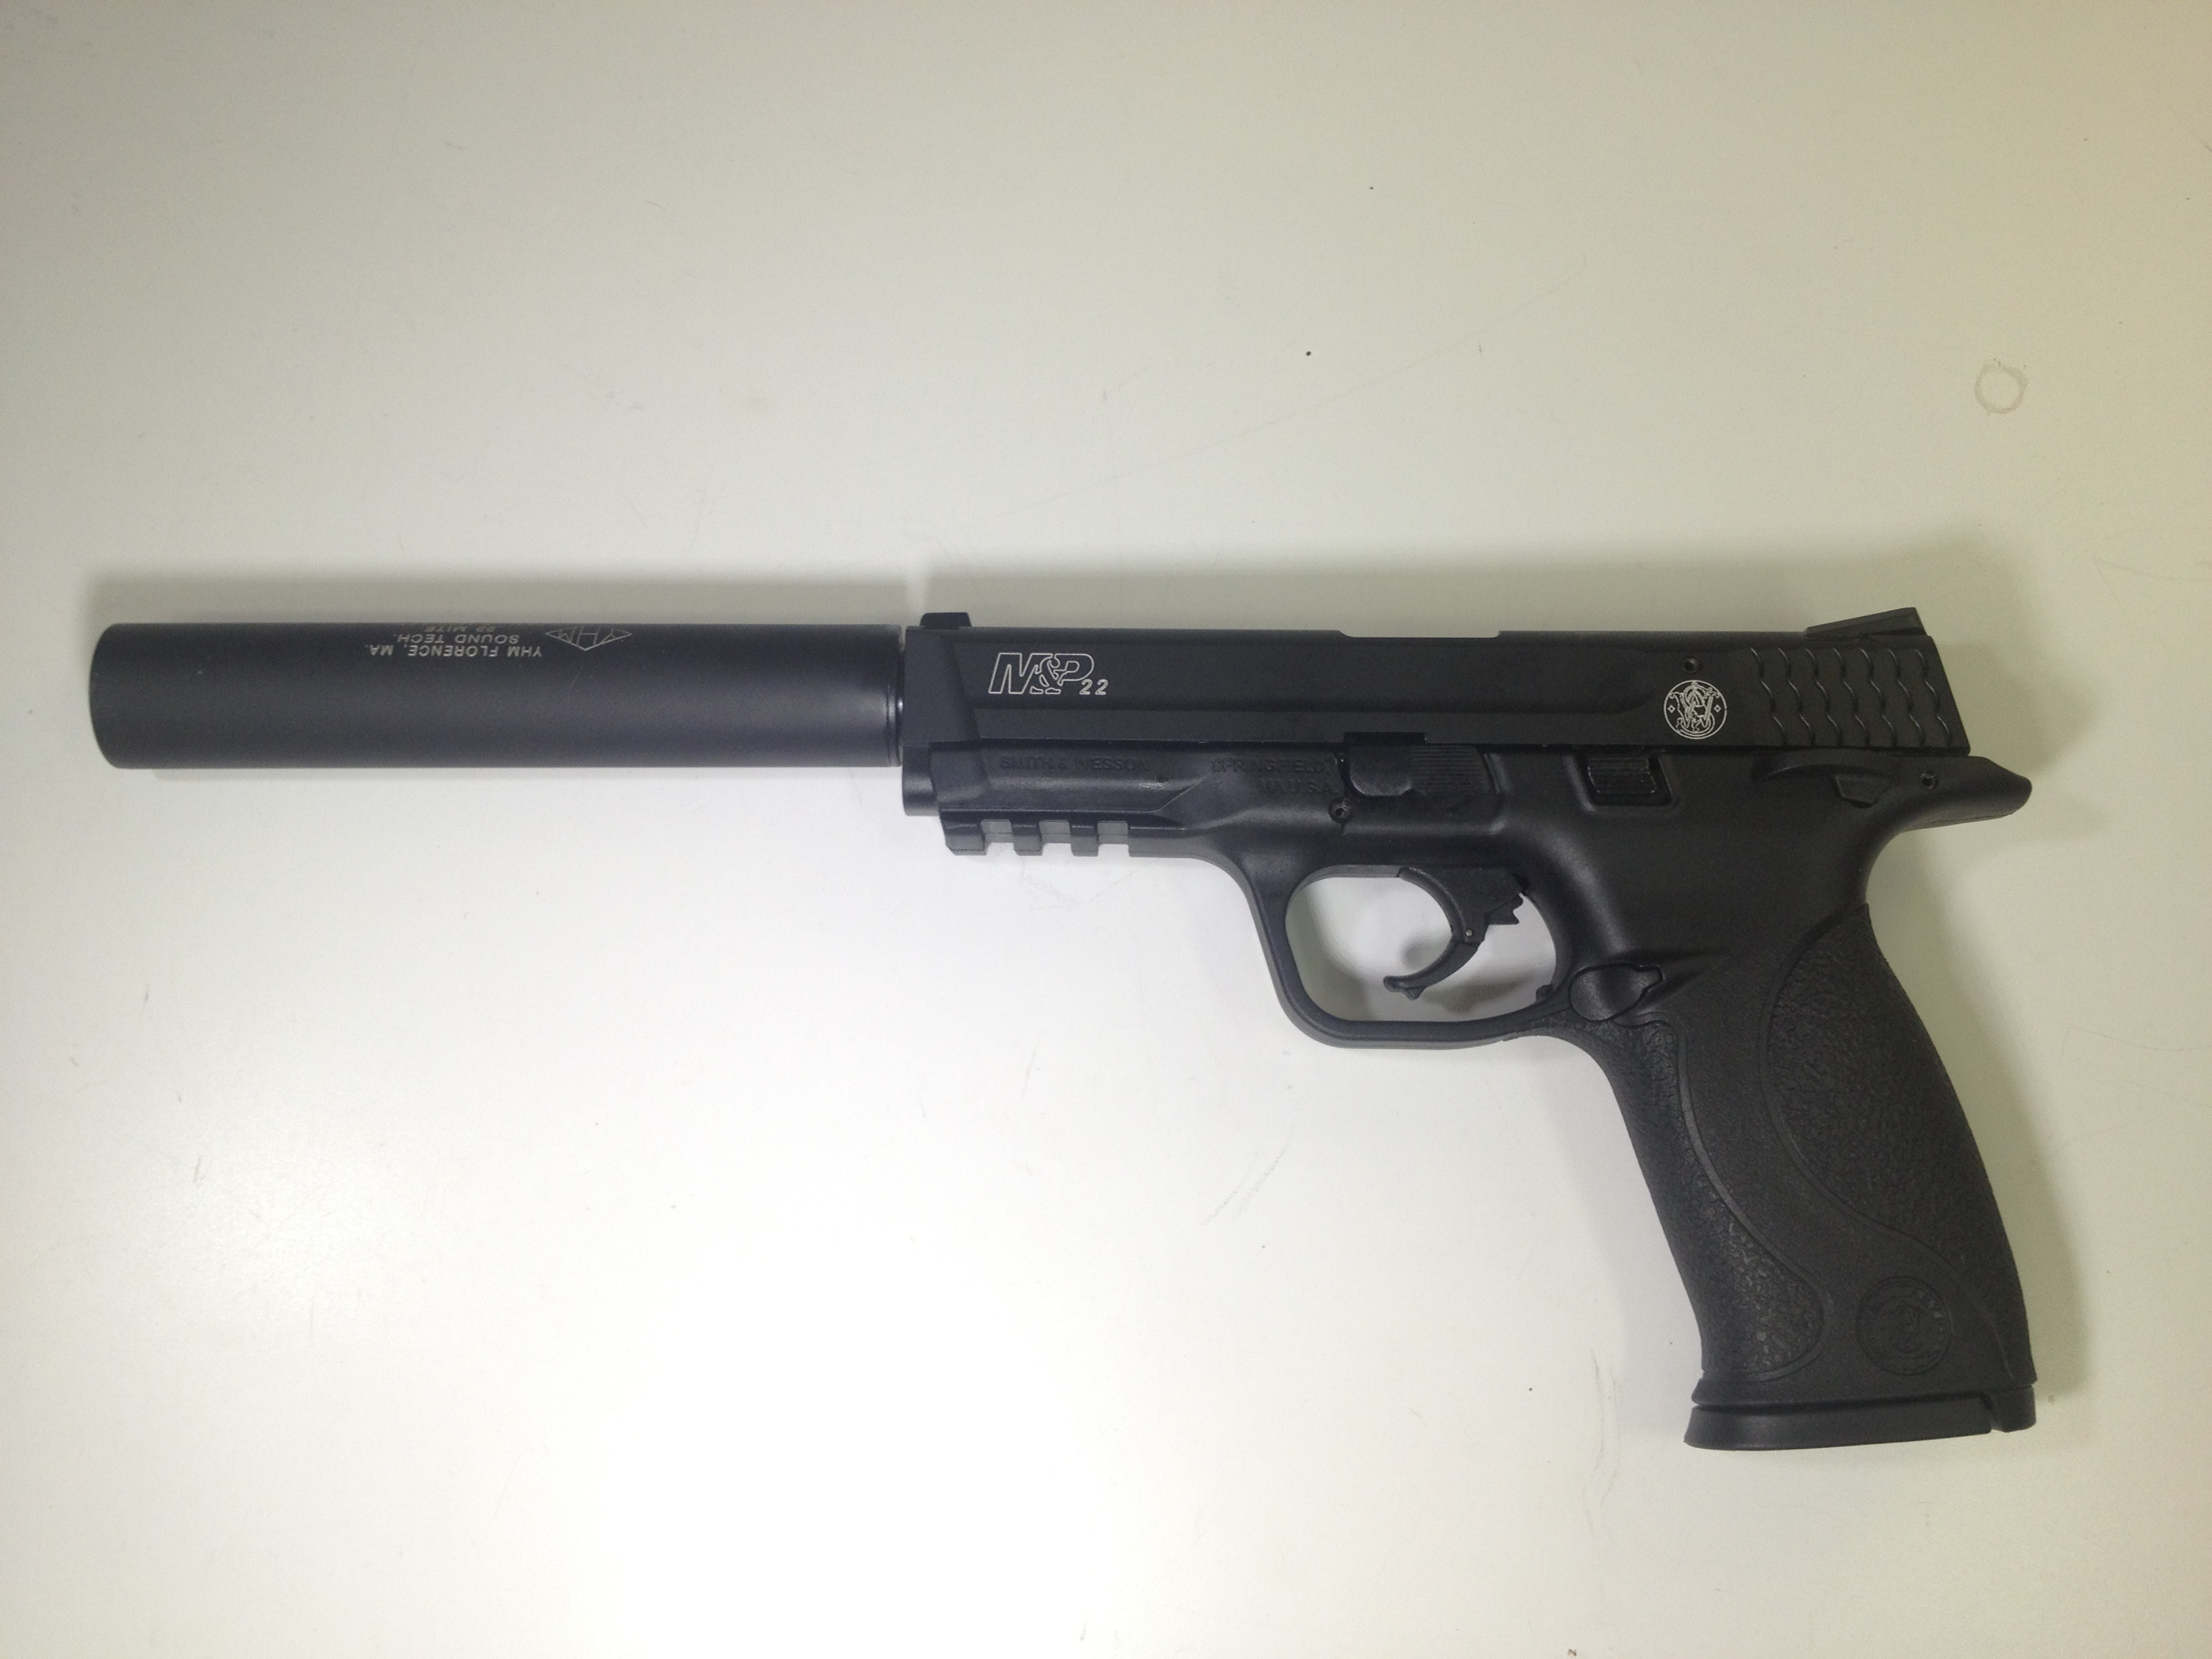 22 Pistol Silencer http://www.ak47.net/forums/t_6_20/382072_MandP_22_suppressor_adaptor_.html&page=1&anc=bottom